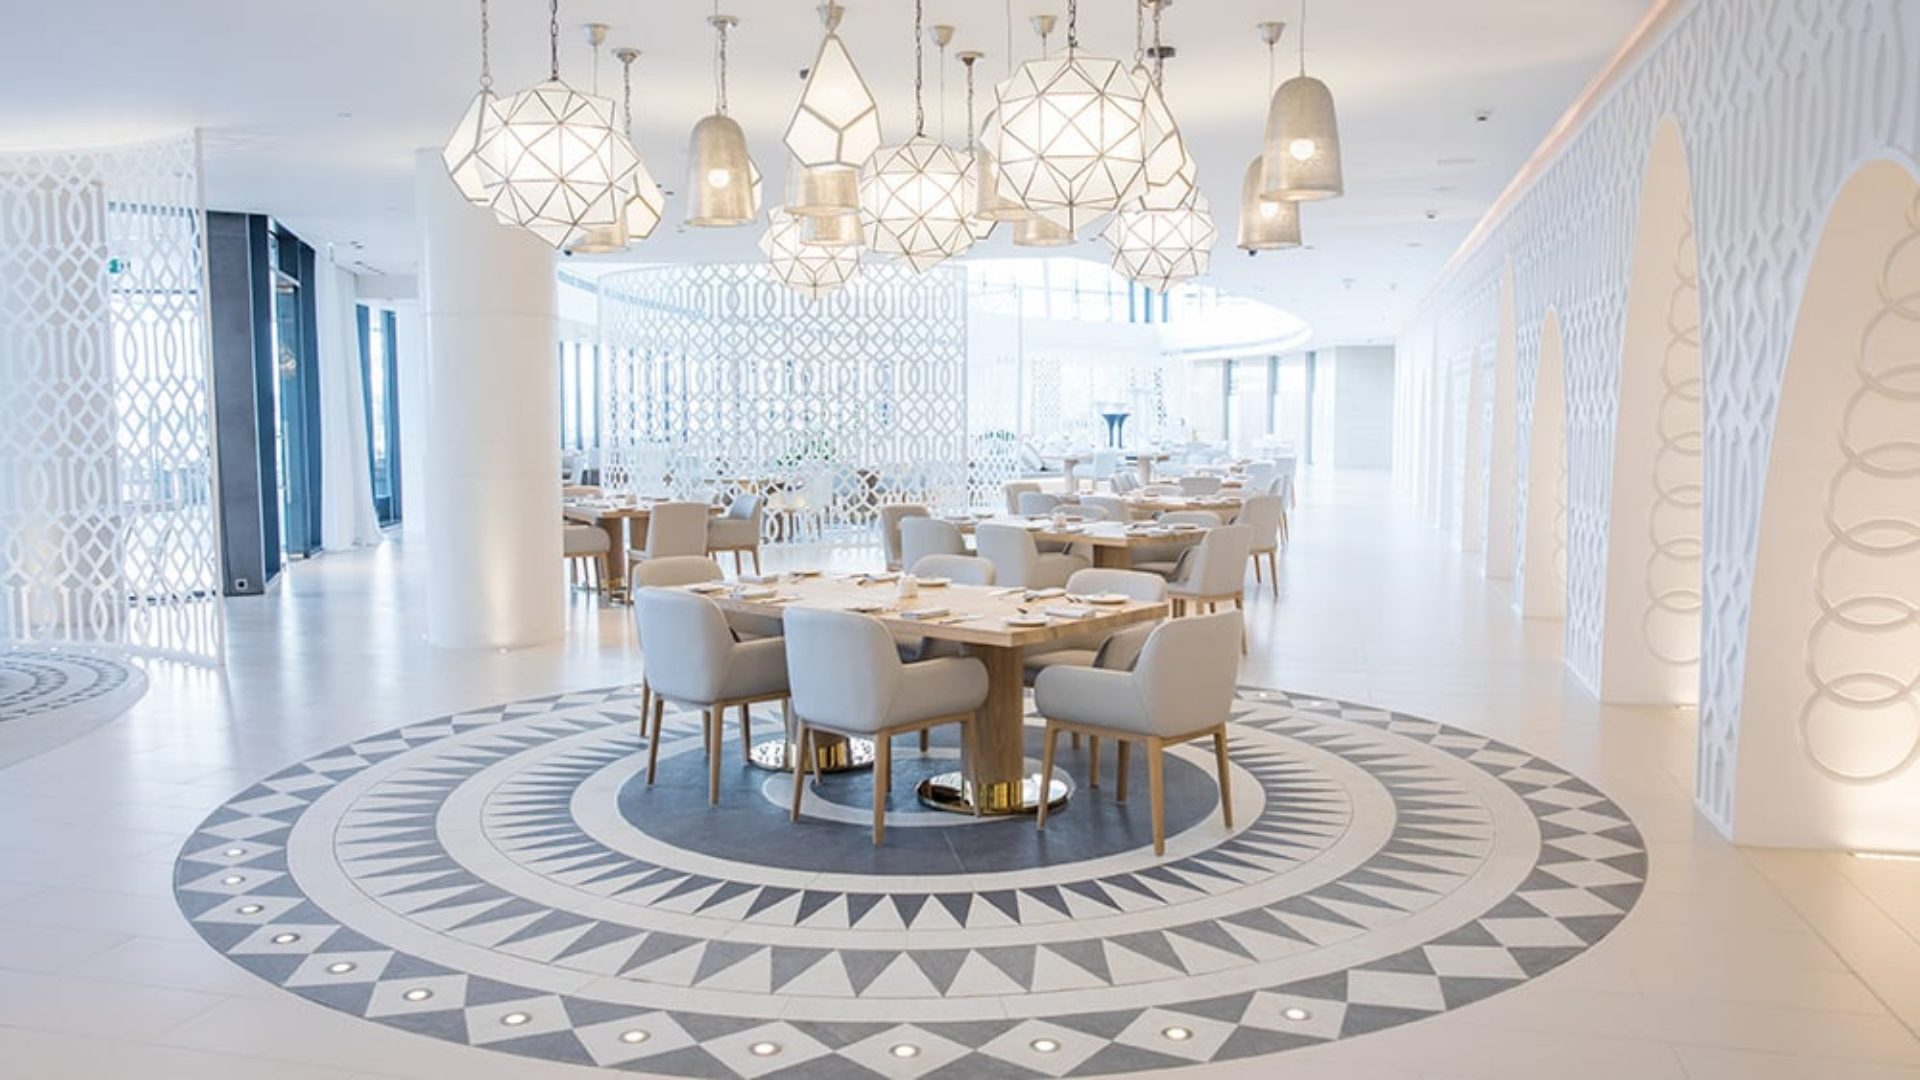 Indoor dining at White Restaurant at Jumeirah at Saadiyat Island